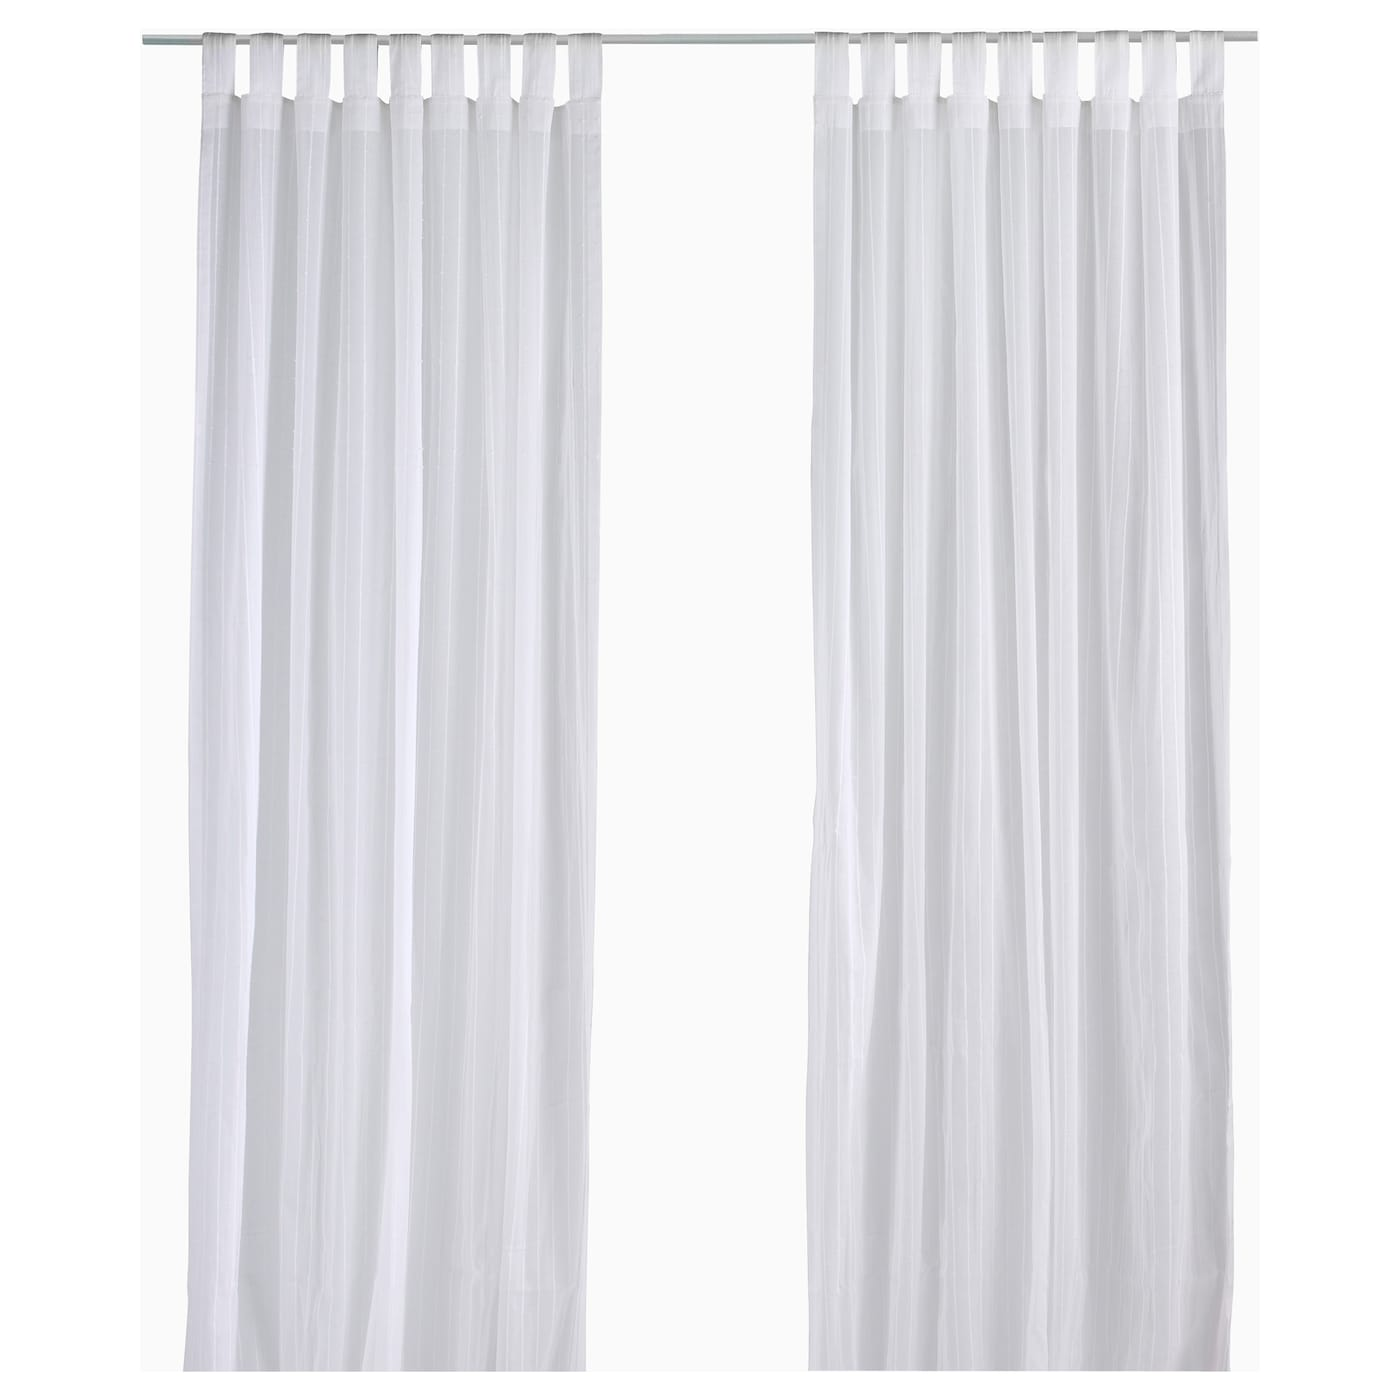 Curtains Matilda Sheer Curtains 1 Pair White 140x250 Cm Ikea